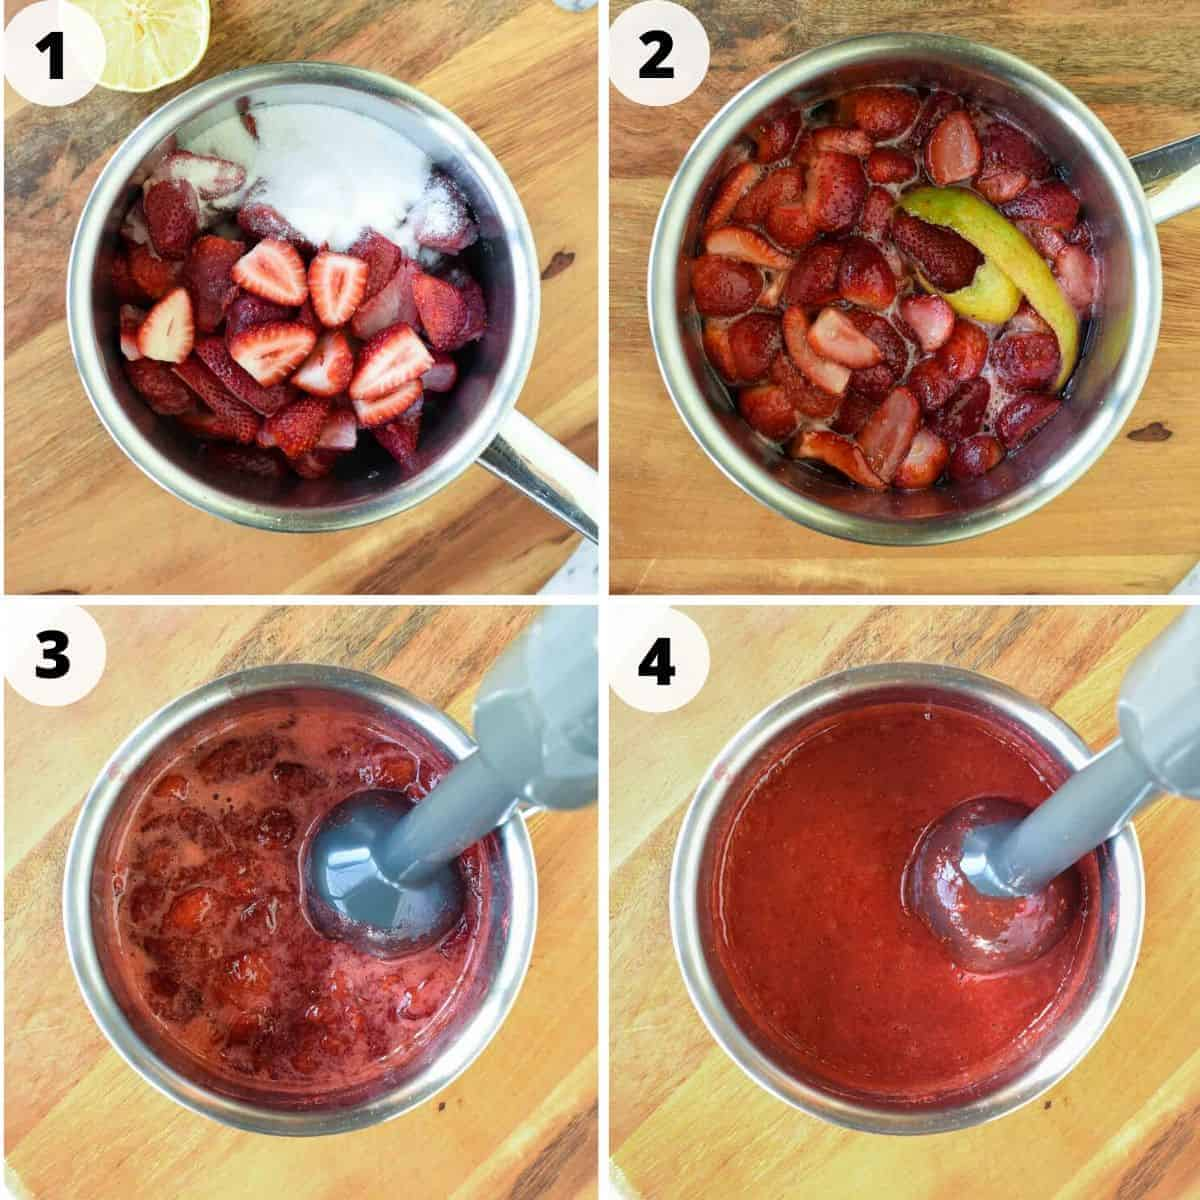 Four images showing the process of making strawberry sauce